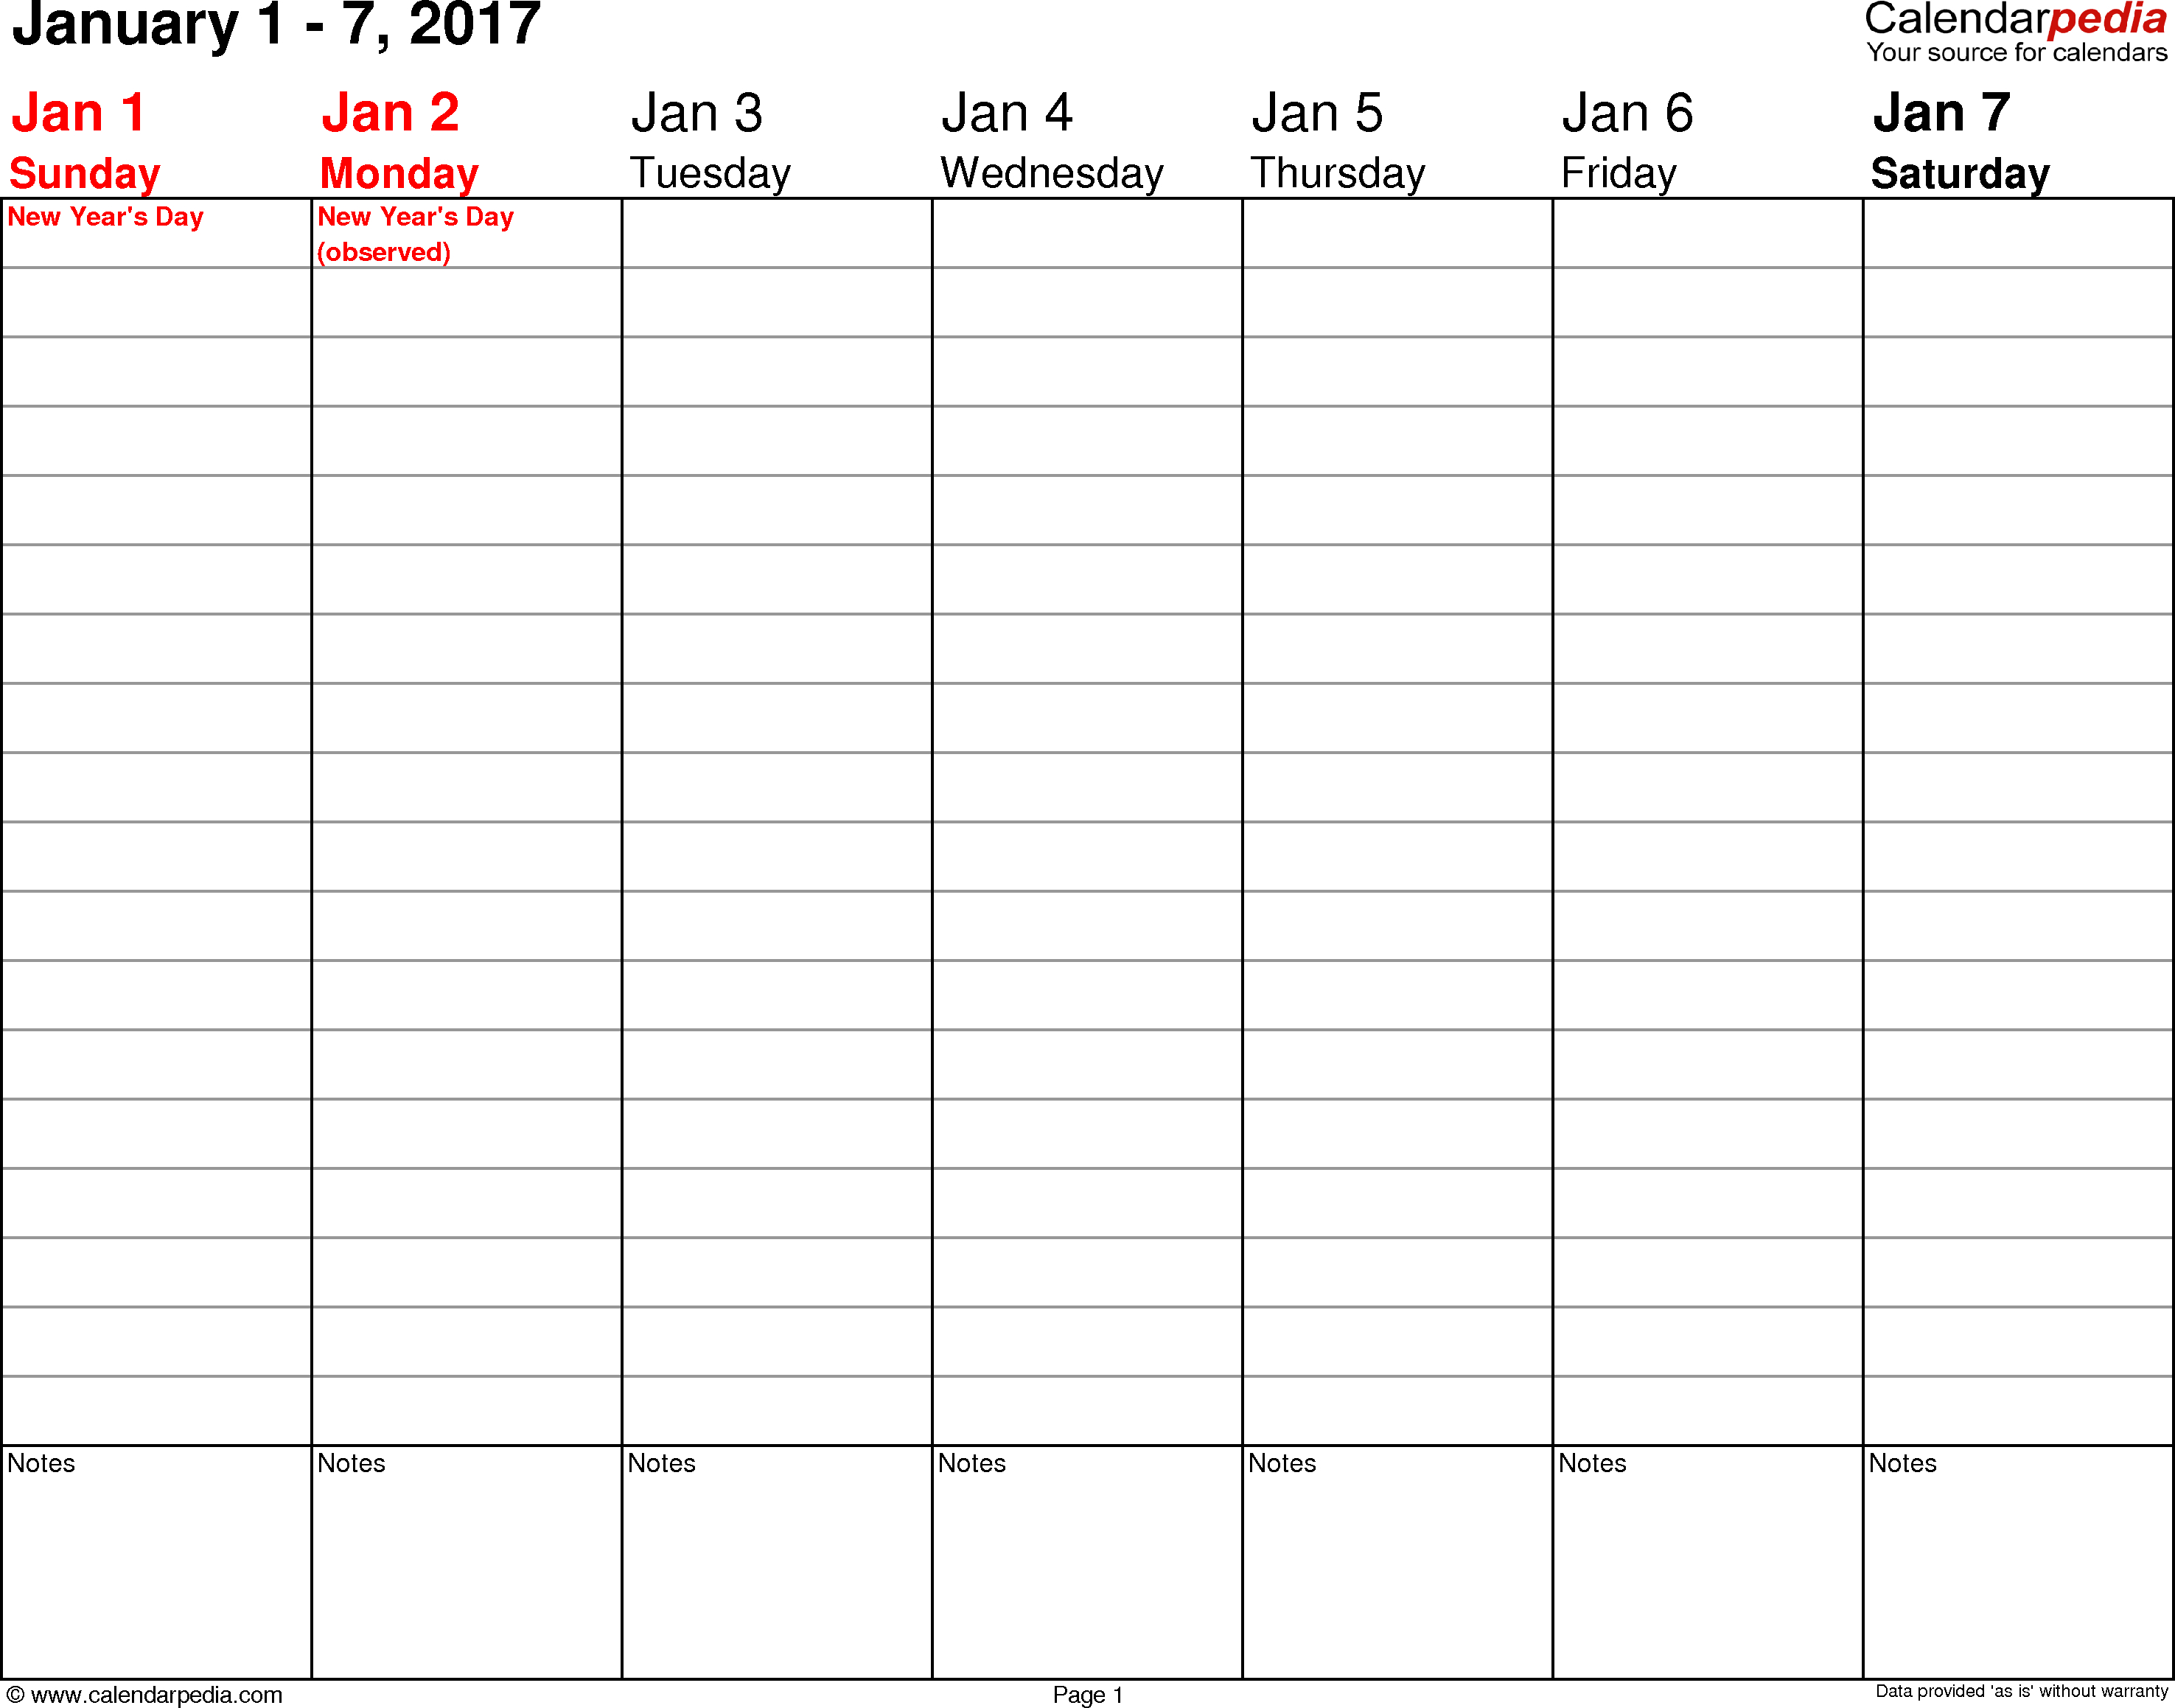 Weekly Calendar 2017 For Word - 12 Free Printable Templates - Free Printable Agenda 2017